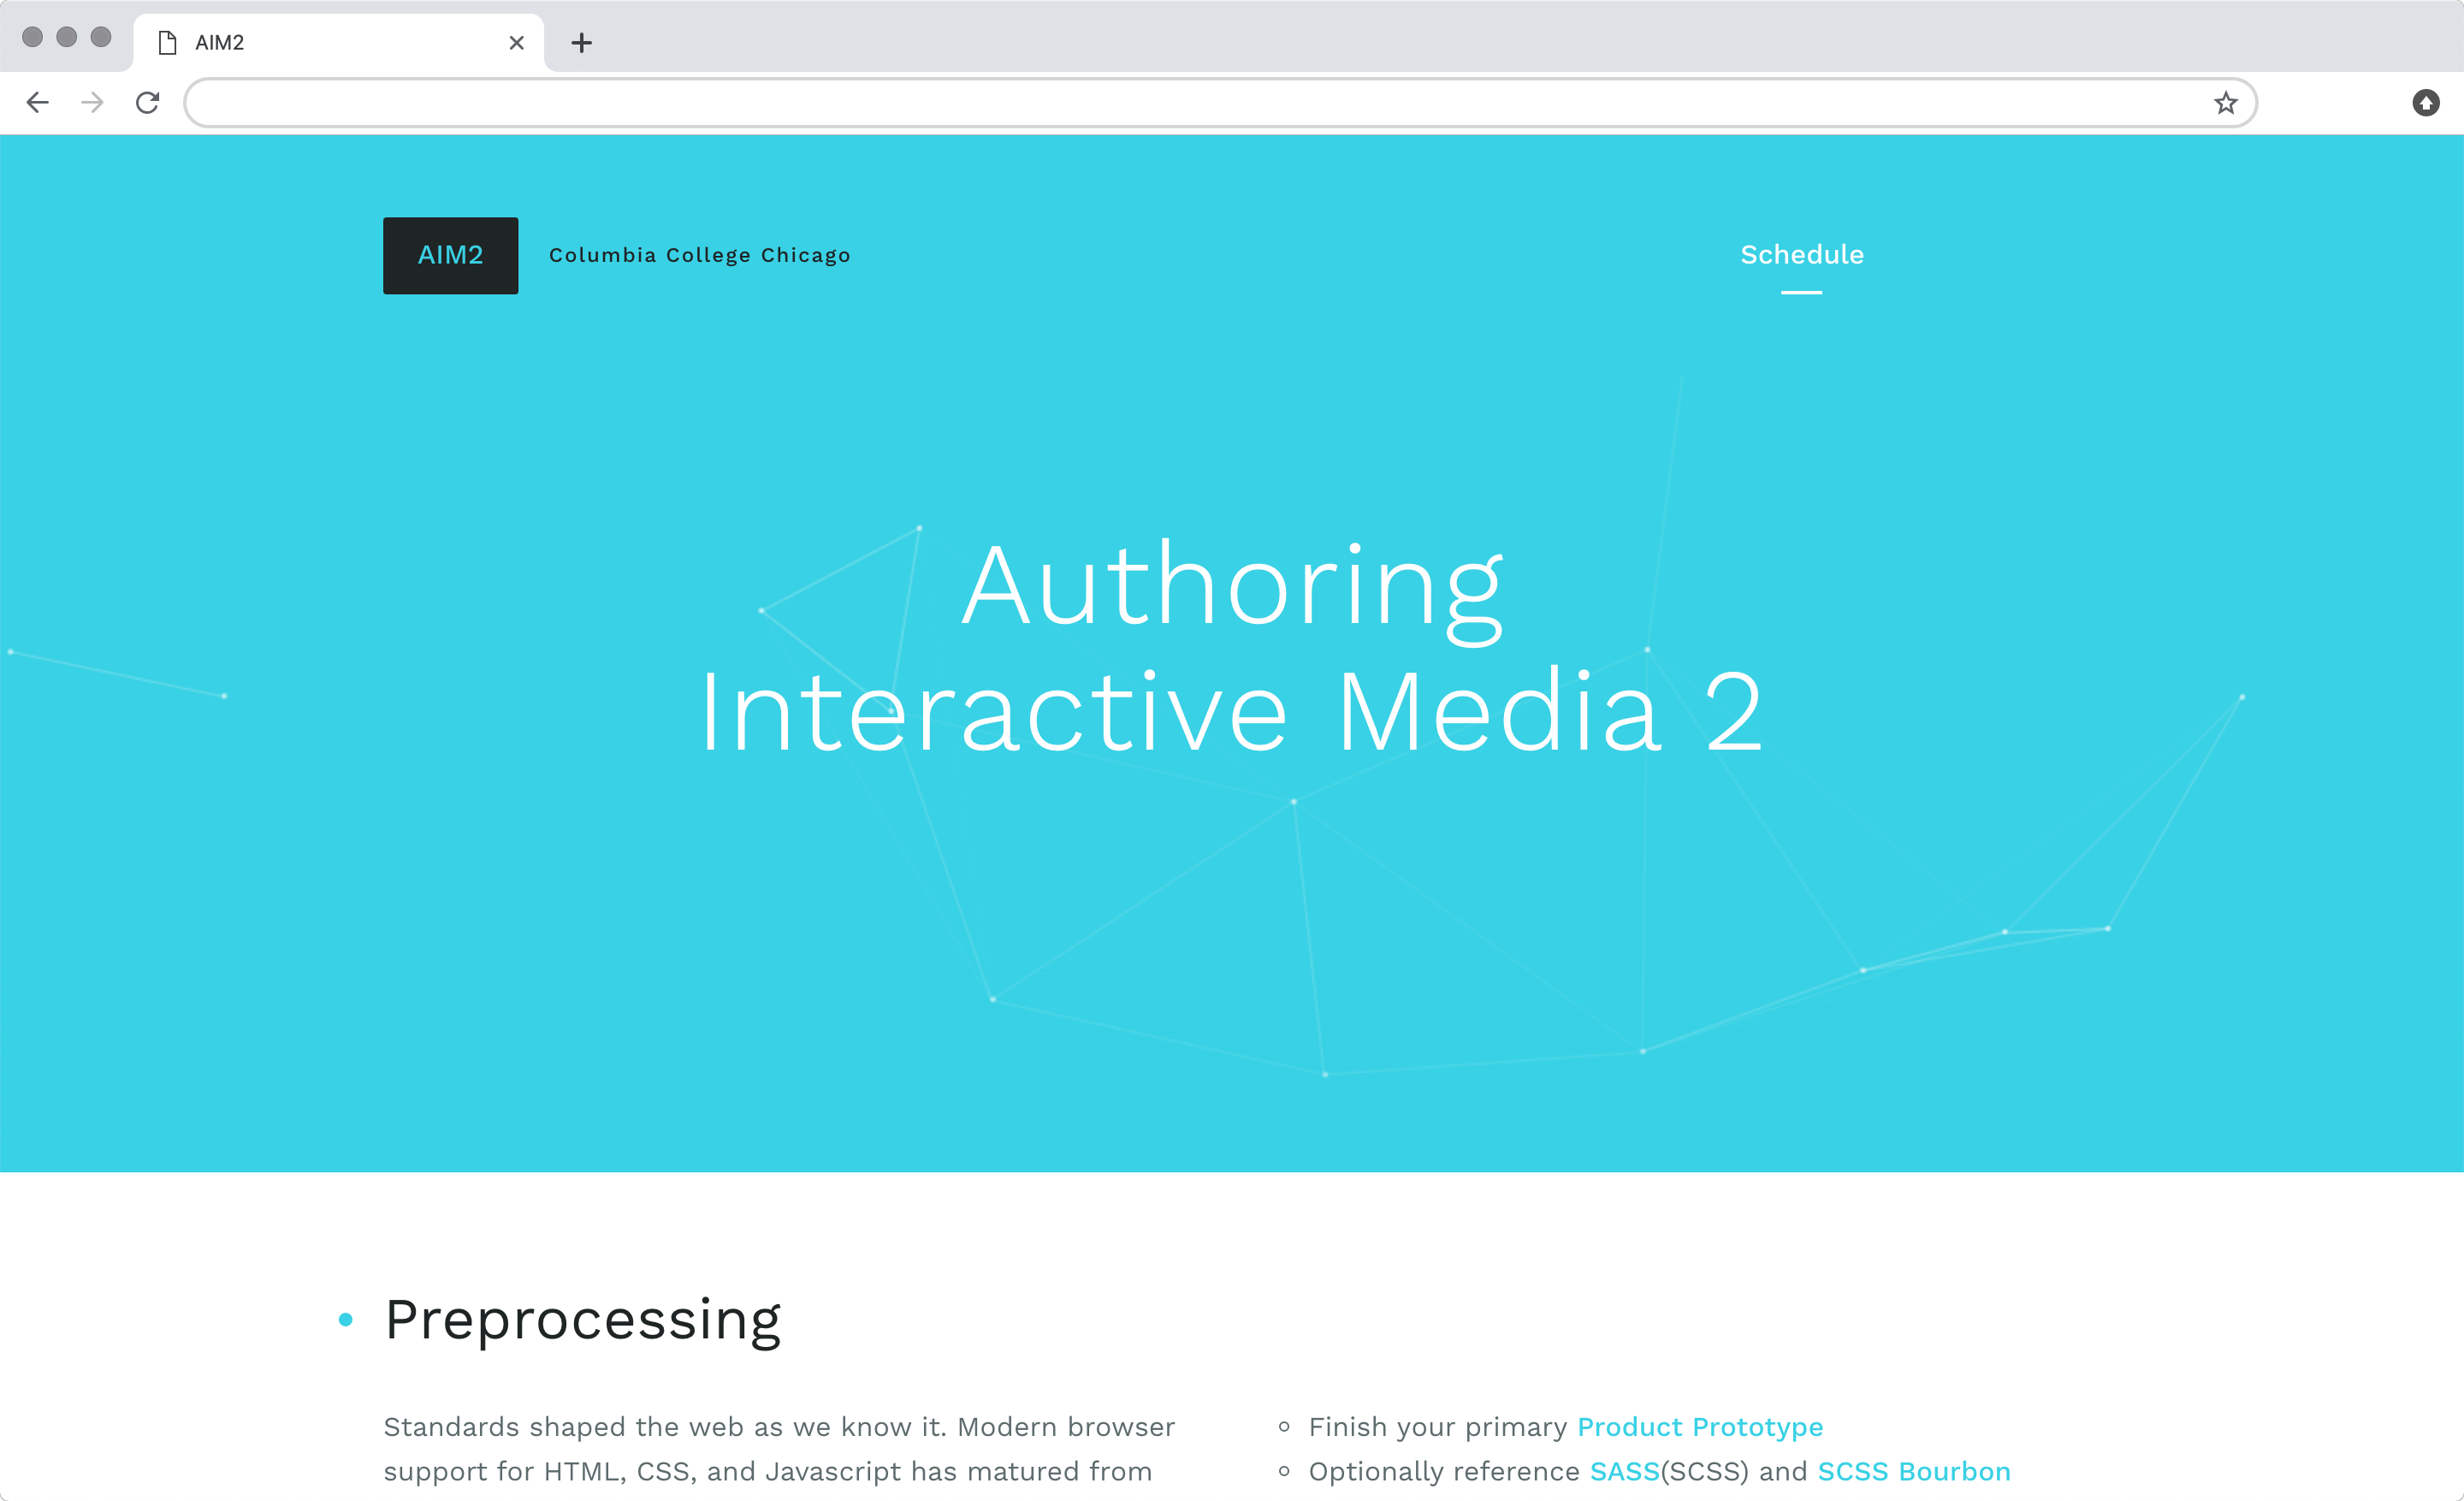 Columbia College Authoring Interactive Media 2 course website design